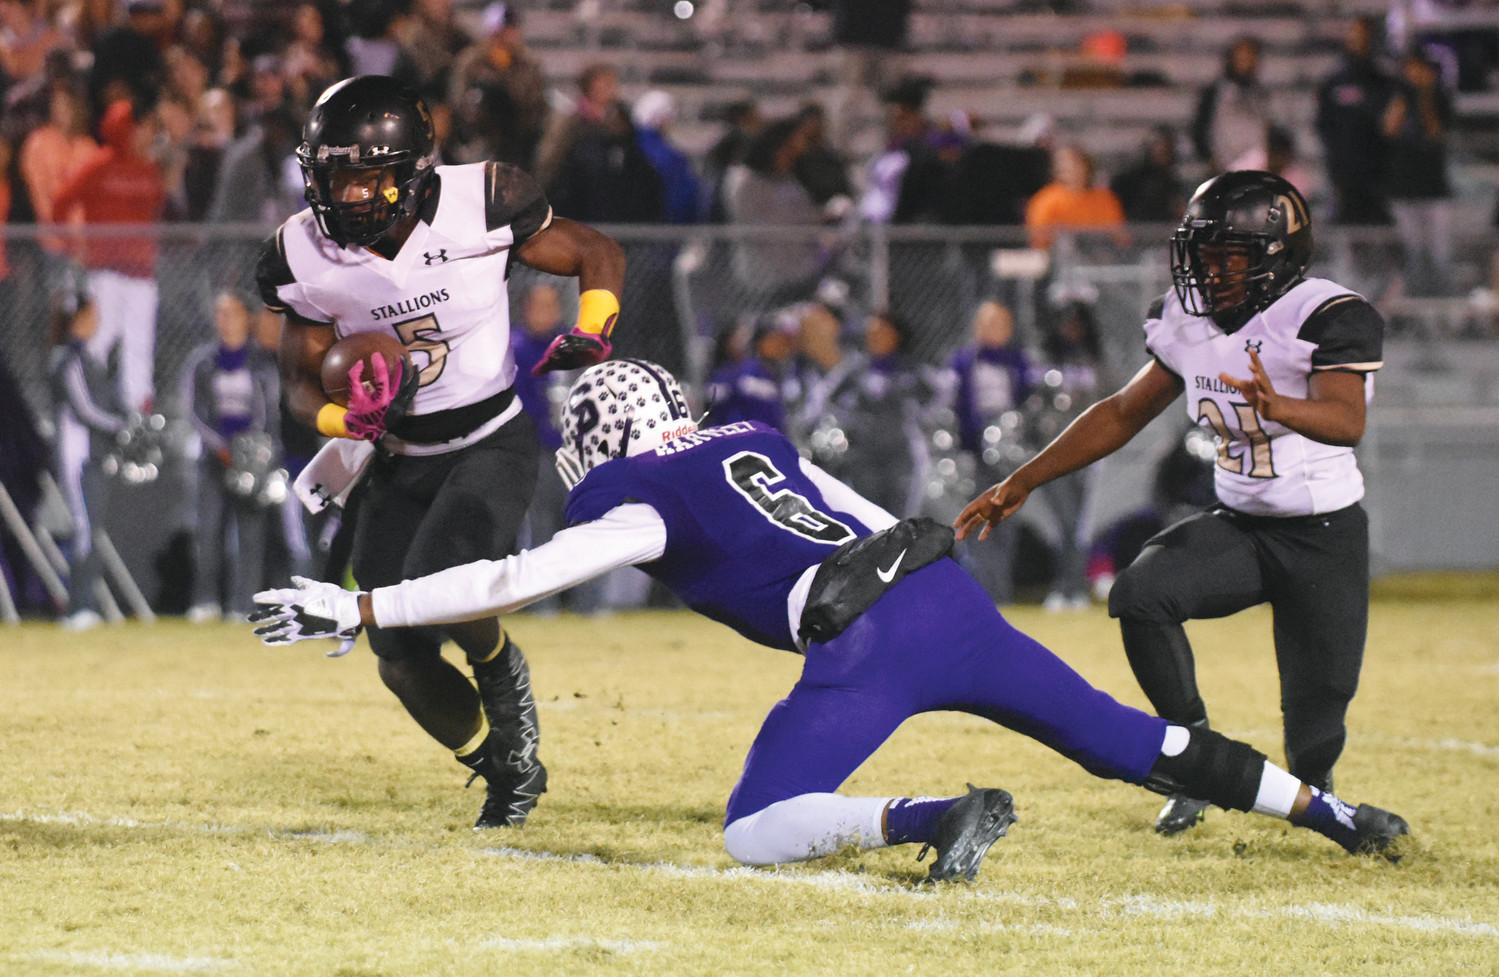 Lee Central running back Demetrius DuBose (5) was one of two Lee Central players to sign letters of intent on Wednesday to play football at South Carolina State University in Orangeburg under long-time head coach Buddy Pough.